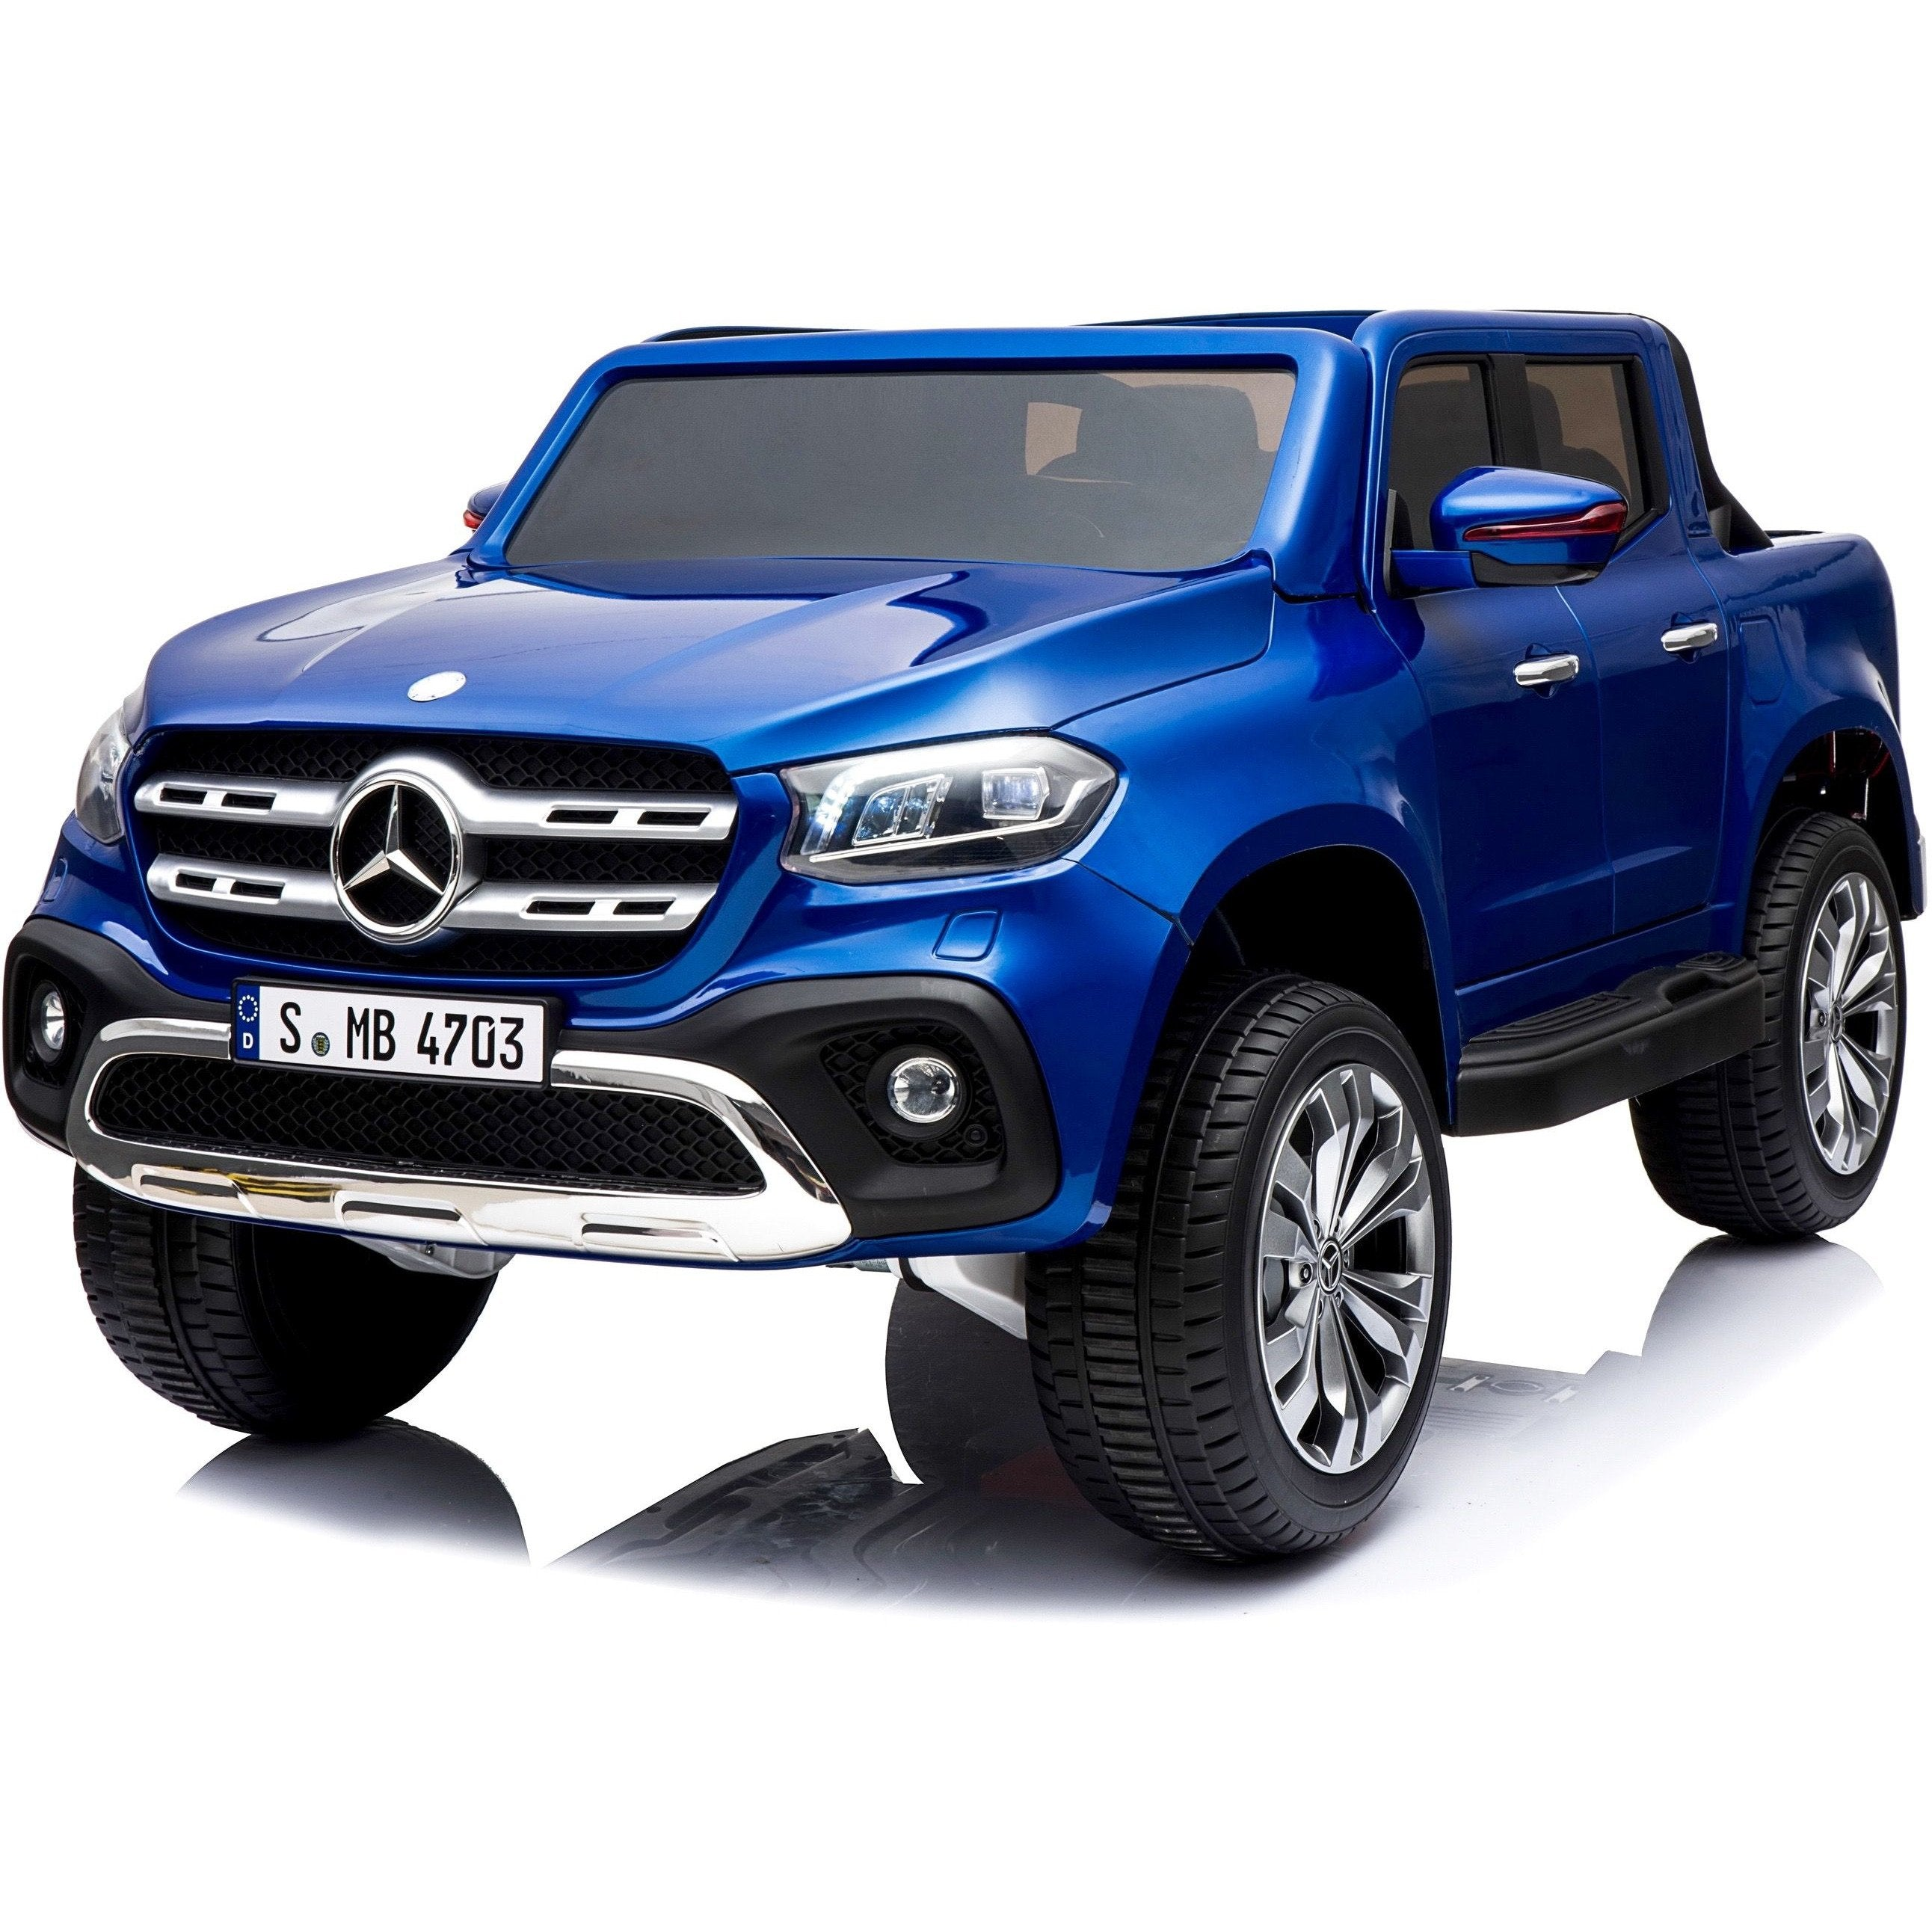 Raf Licensed Ride on Mercedes 2 seater - X-Class 4WD Children's  Pickup - rafplay